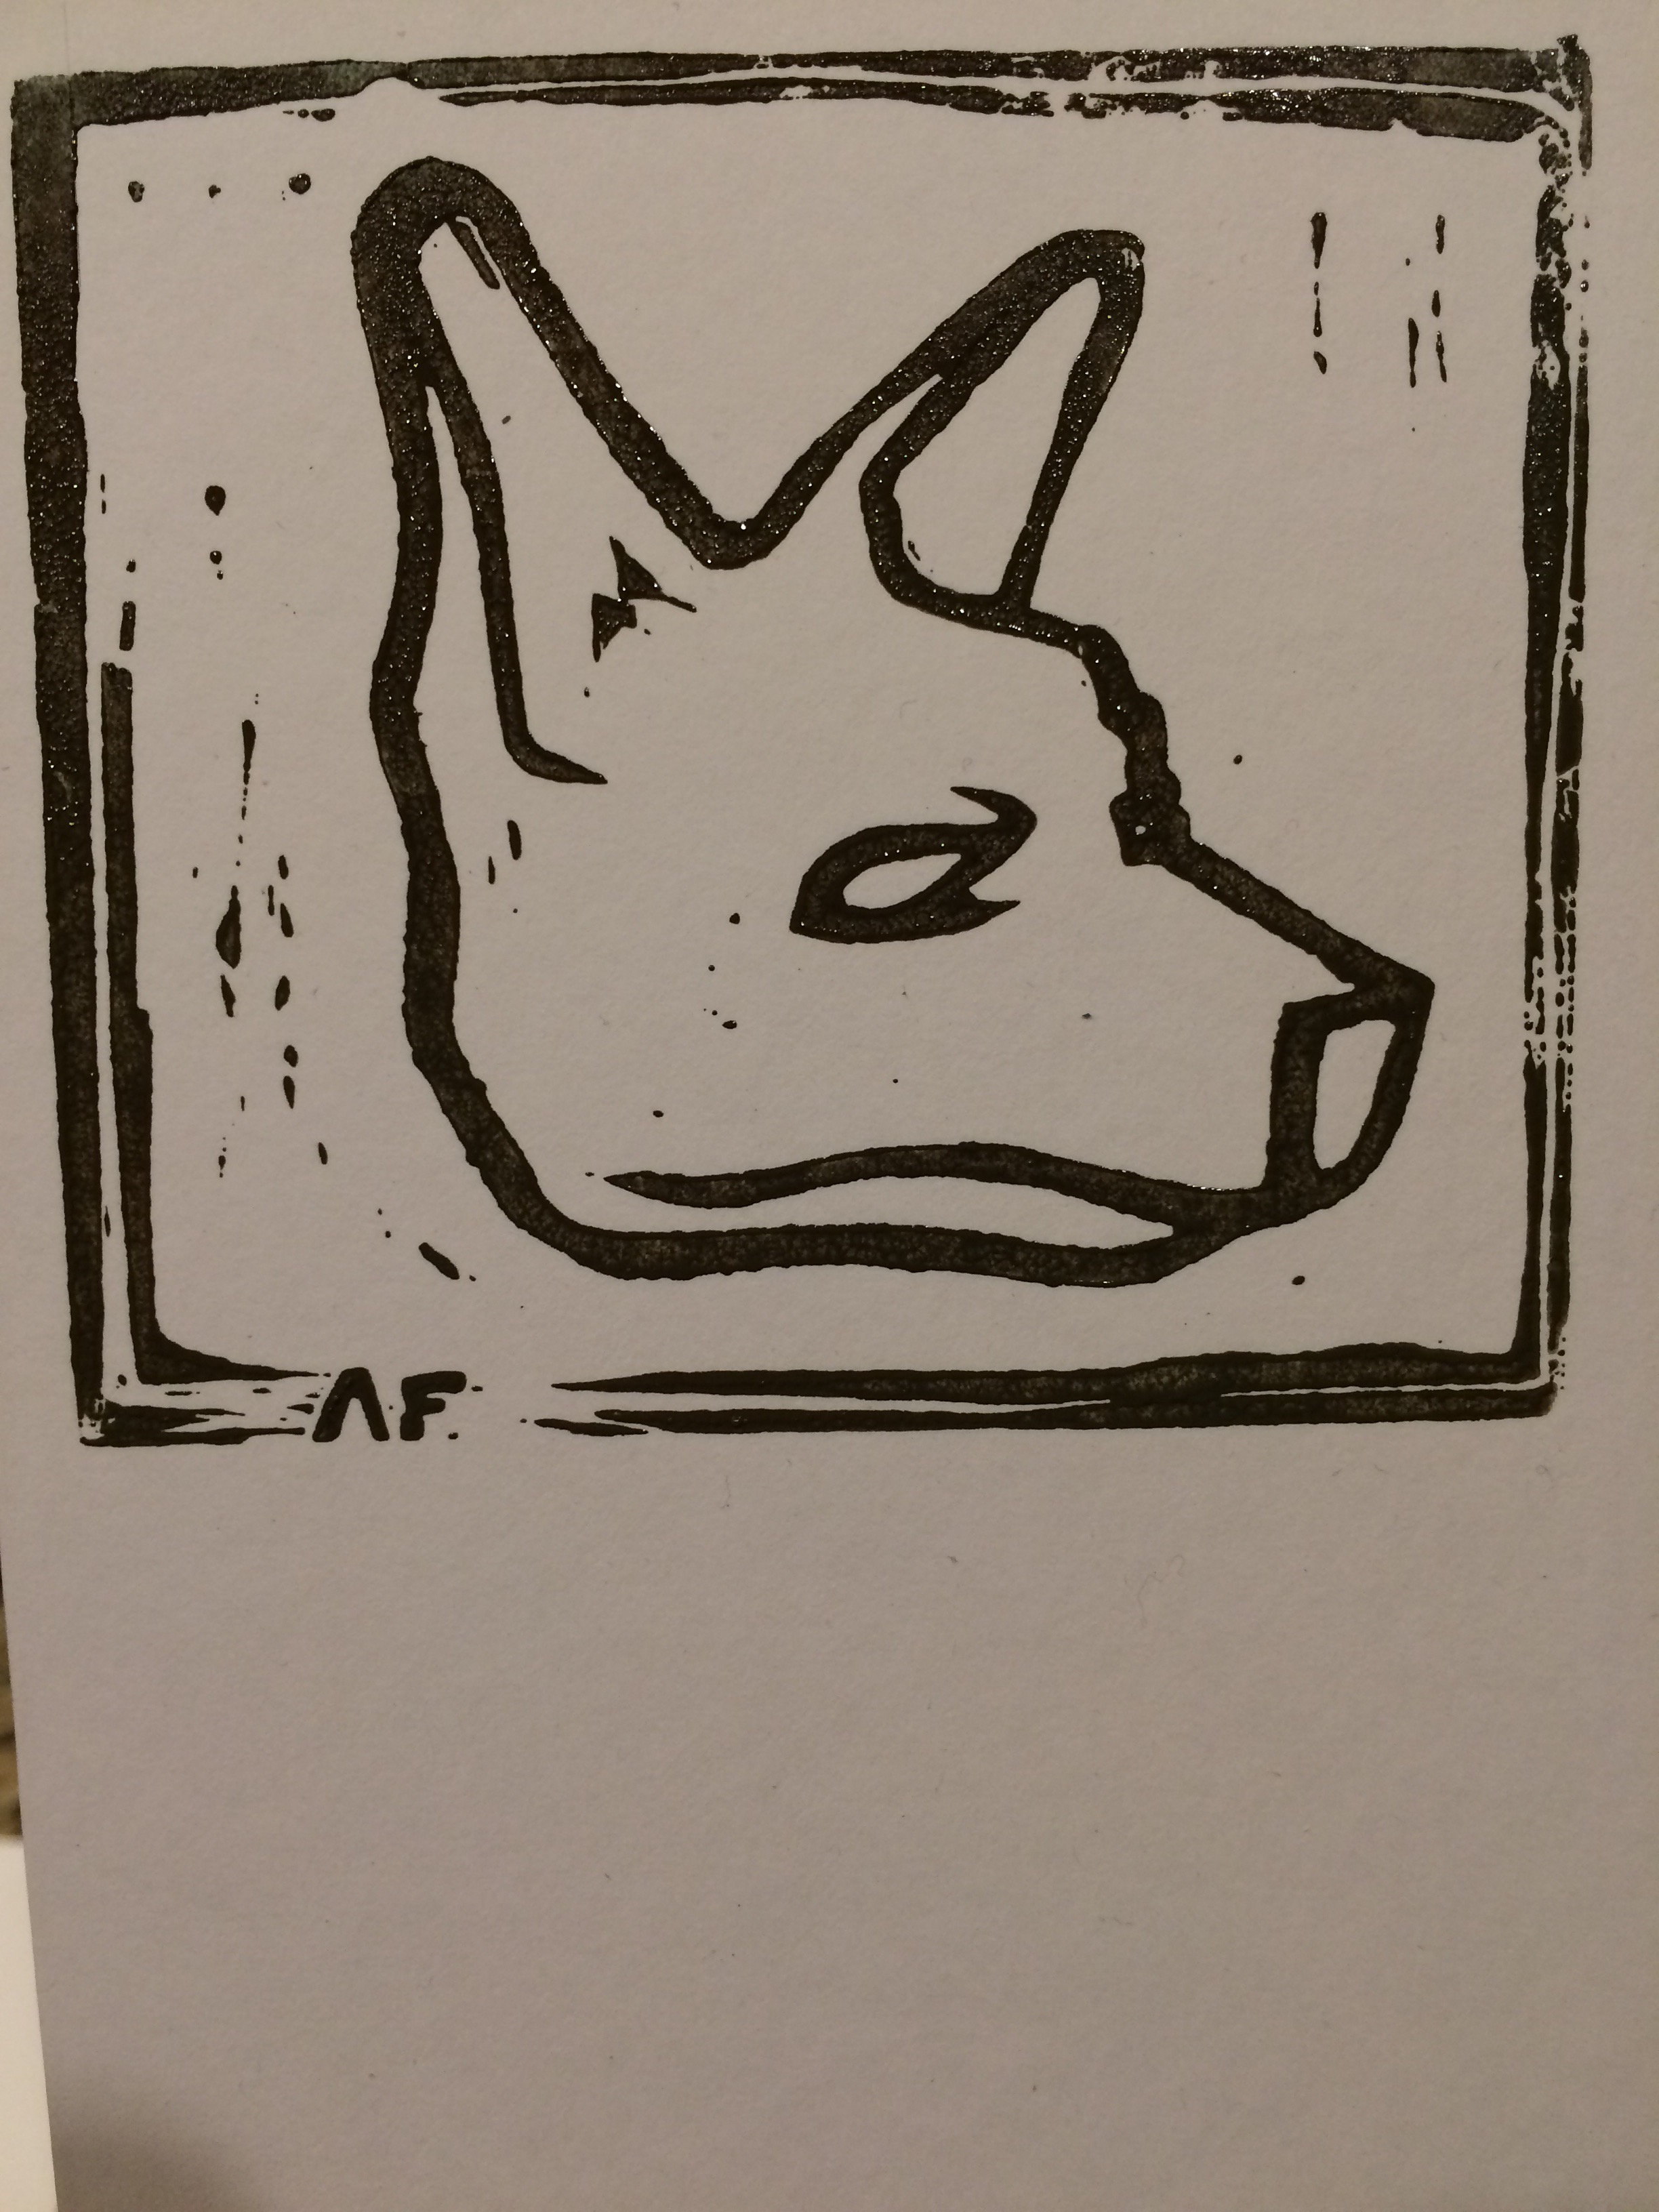 First print of dog head template on scrap material